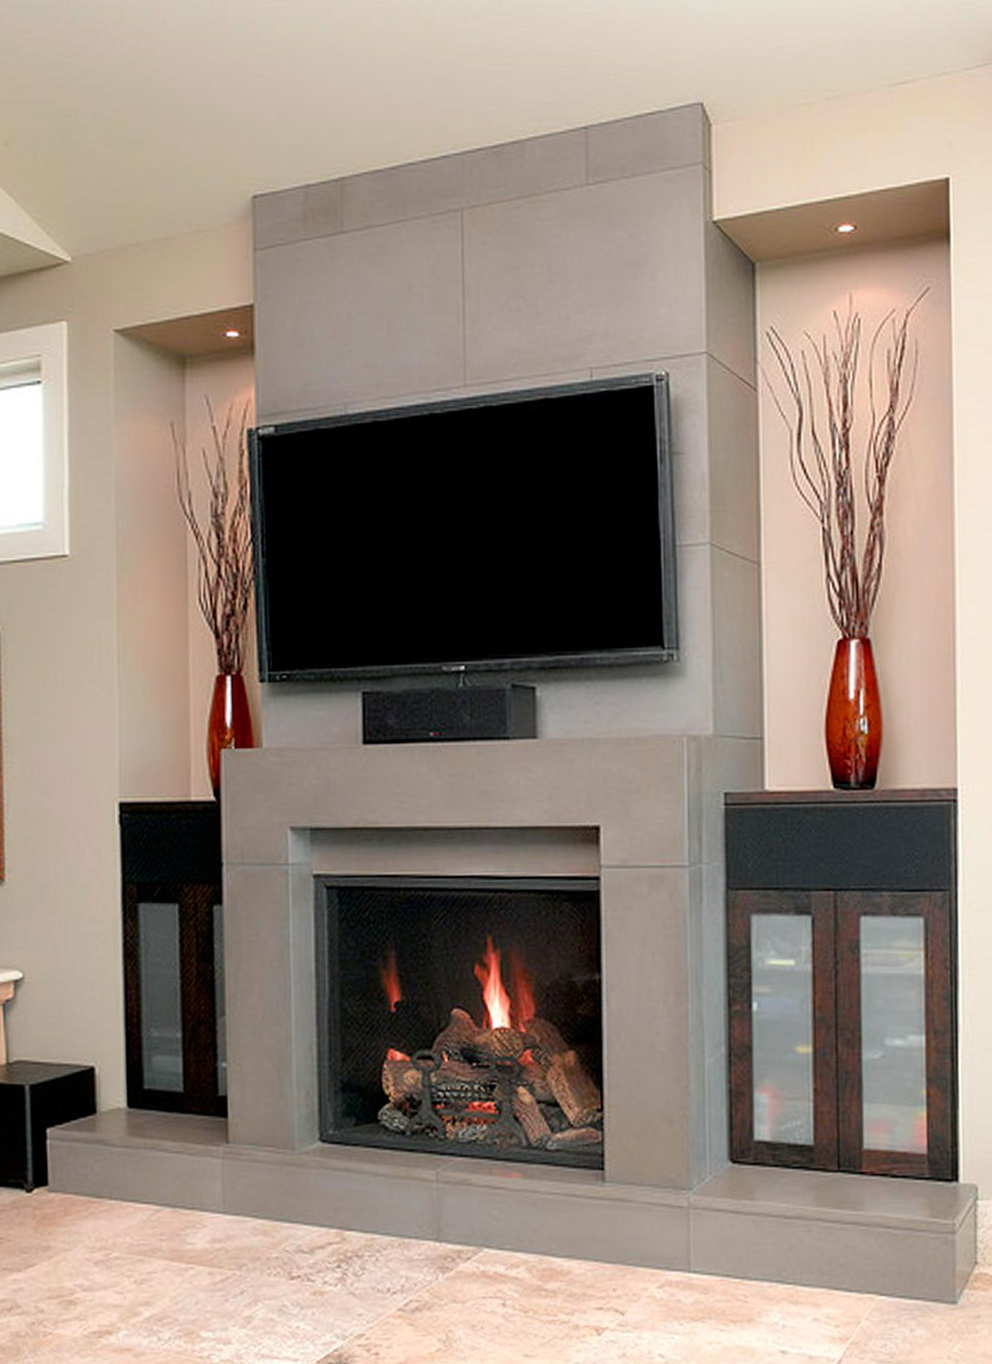 Contemporary fireplace designs with tv above home design ideas - Build contemporary fireplace ideas ...